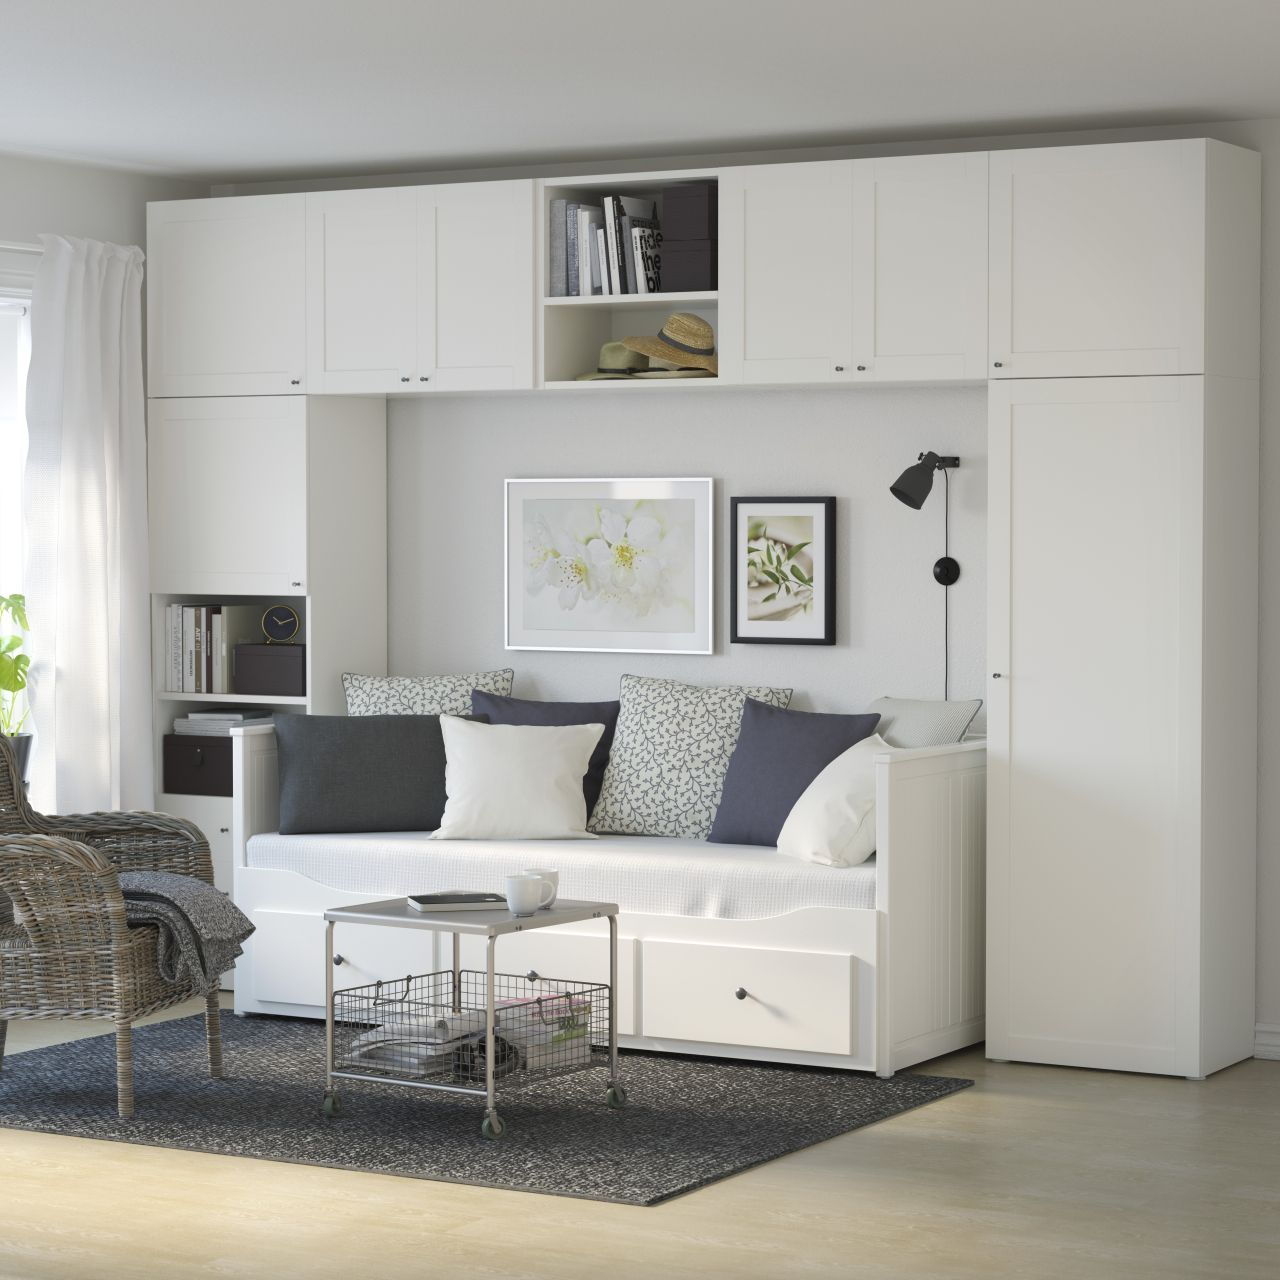 Hemnes Day Bed With Drawers Under The Wardrobe System Makes Small Space Bigger You Can Easil Bedroom Furniture Layout Small Bedroom Furniture Ikea Living Room